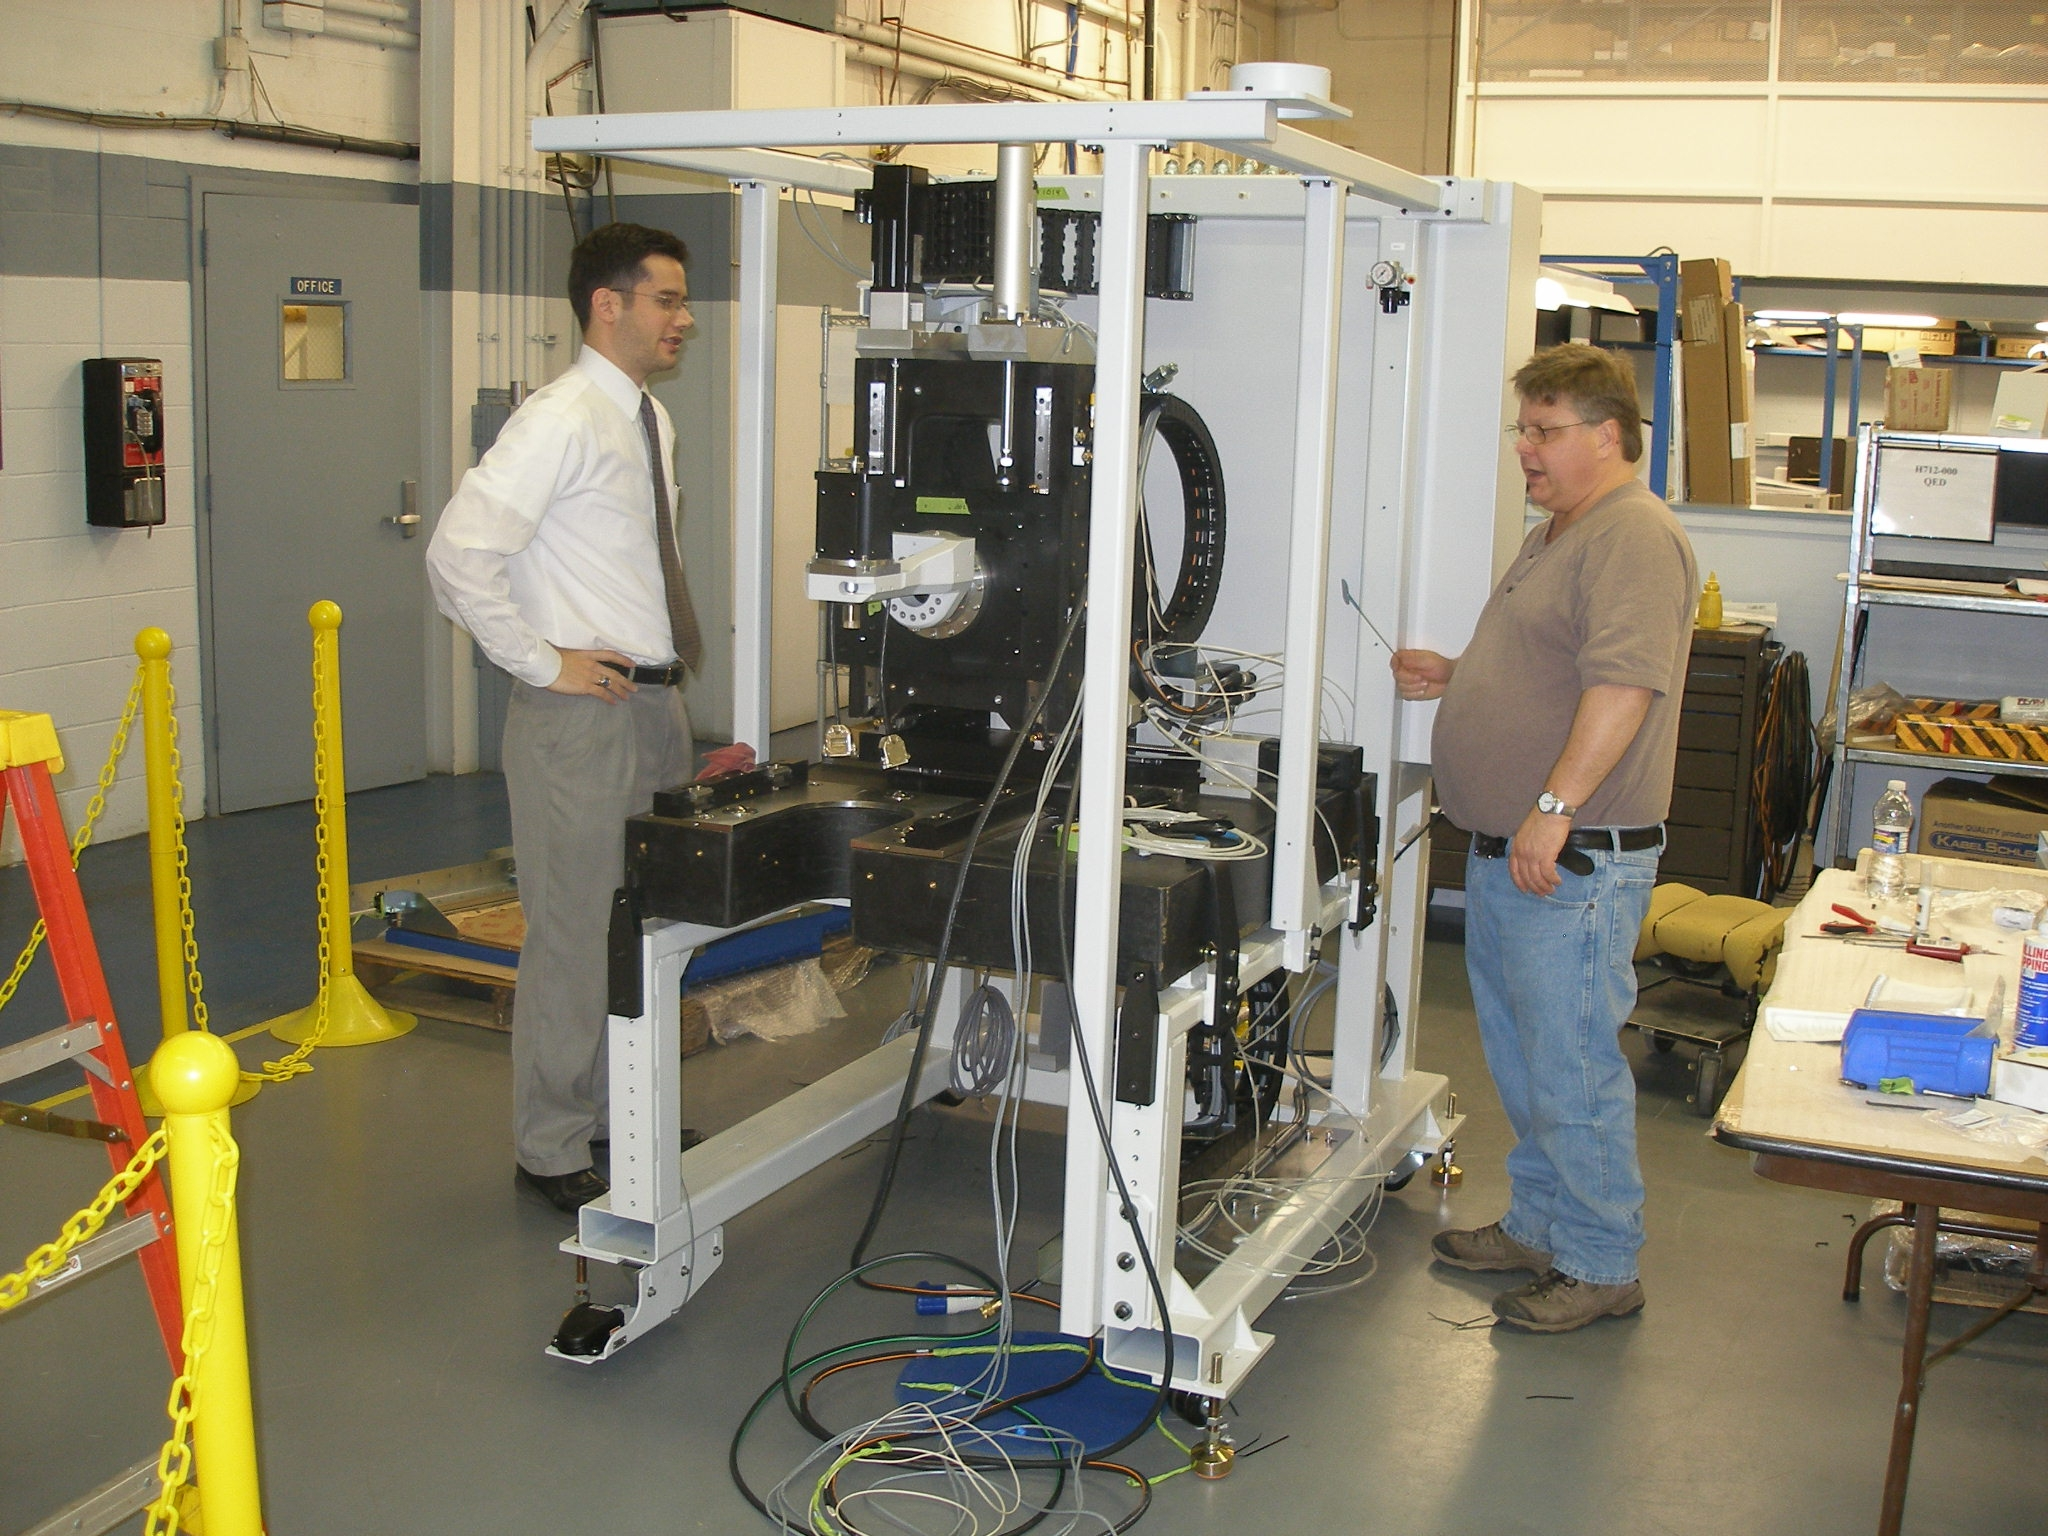 Engineer and Assembler next to a prototype build (large optics machinery)